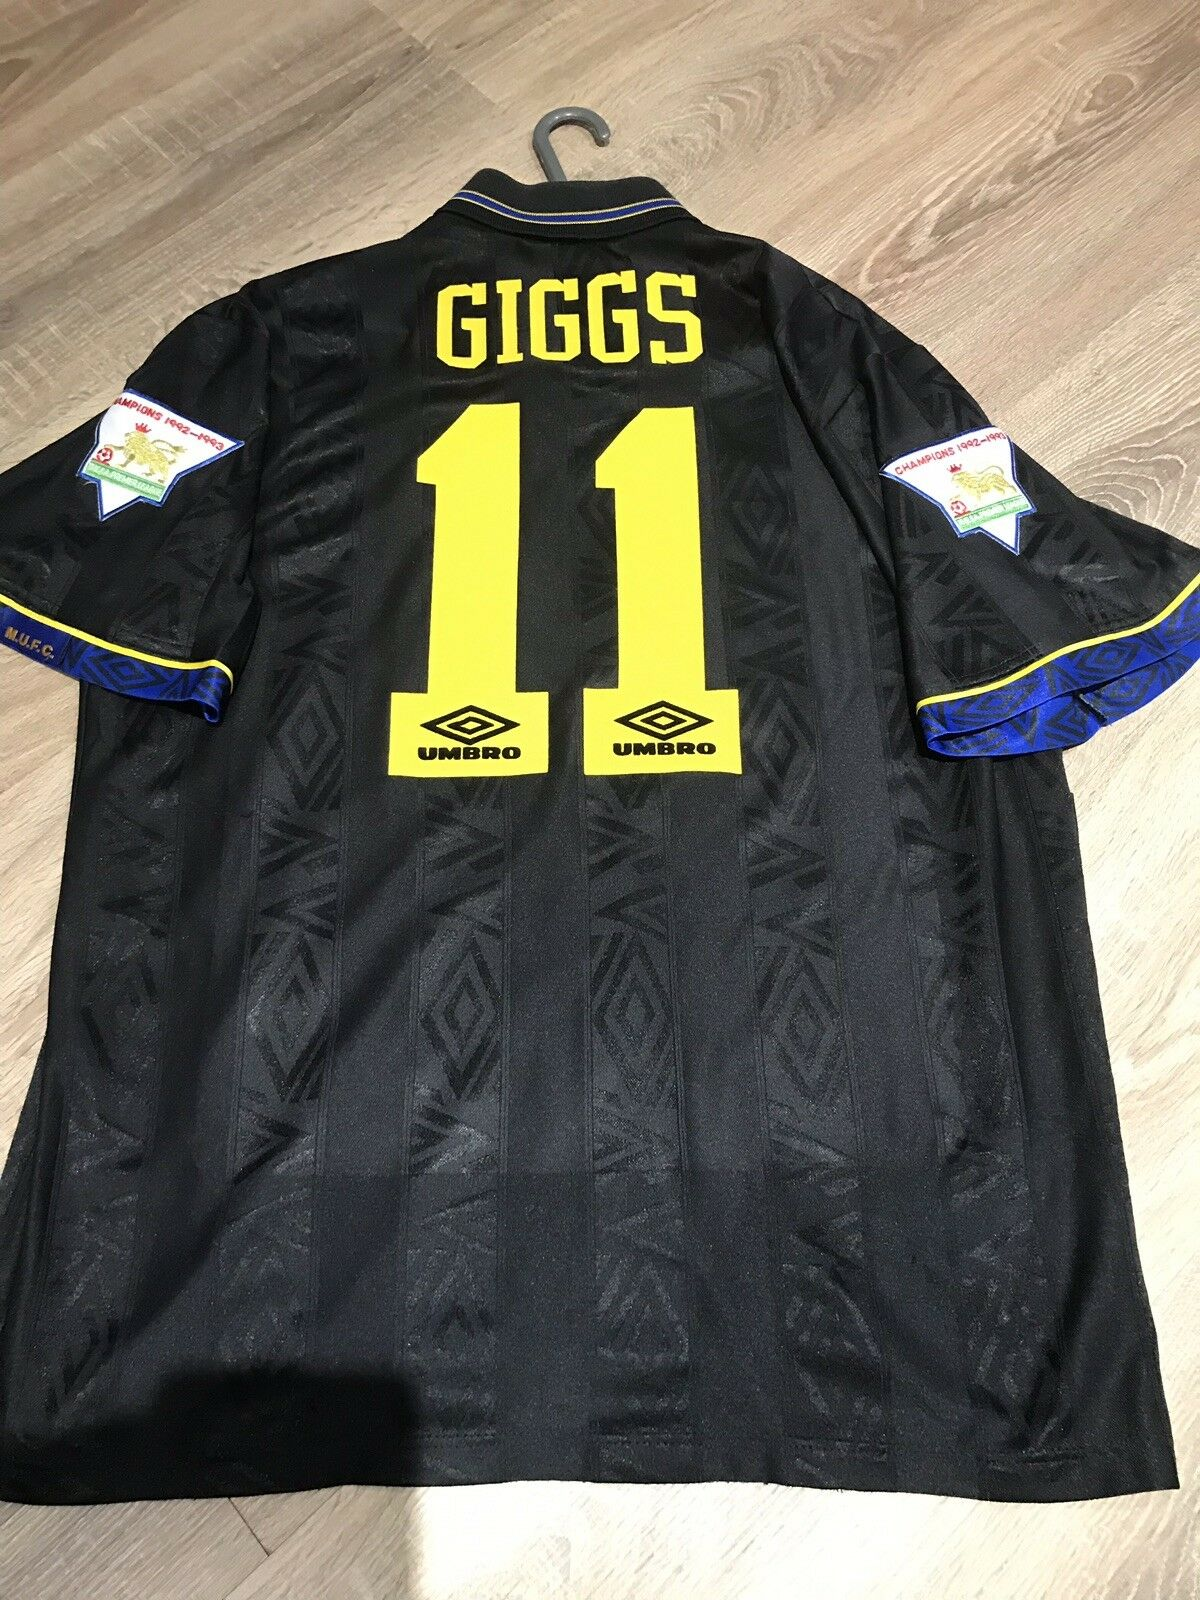 Manchester United Vintage 199495 Away Camicia Adulti L 11 GIGGS